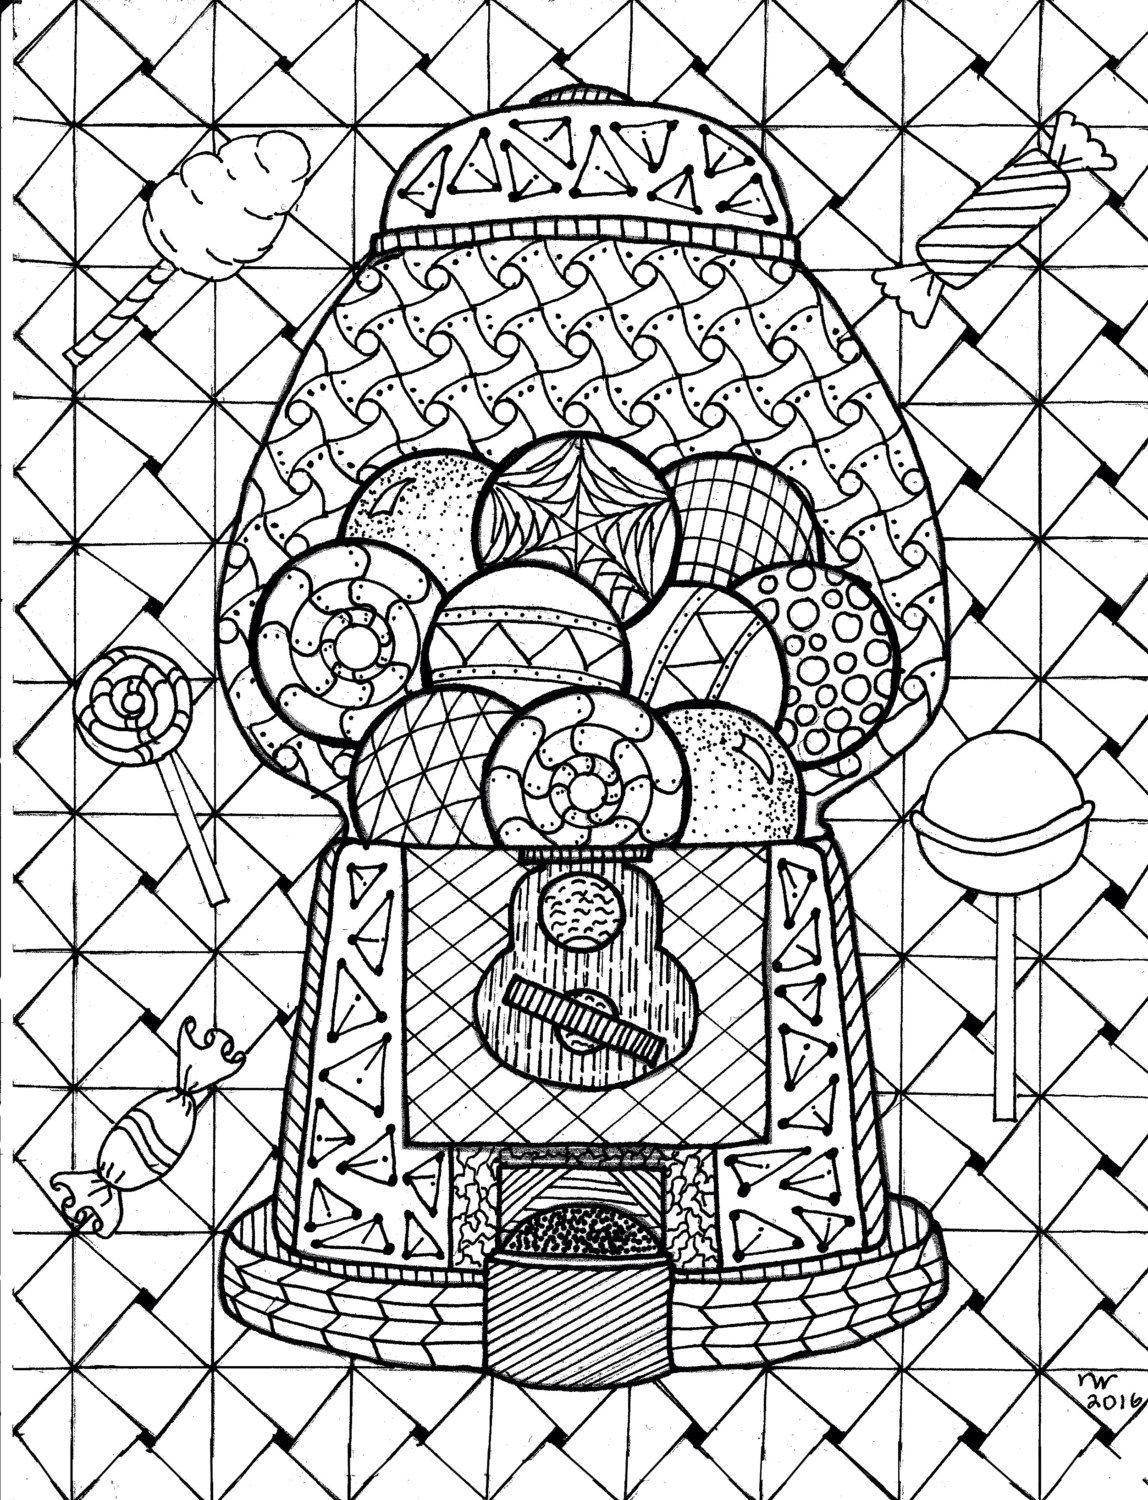 1148x1500 Shocking Gumball Machine Zentangle Coloring Page